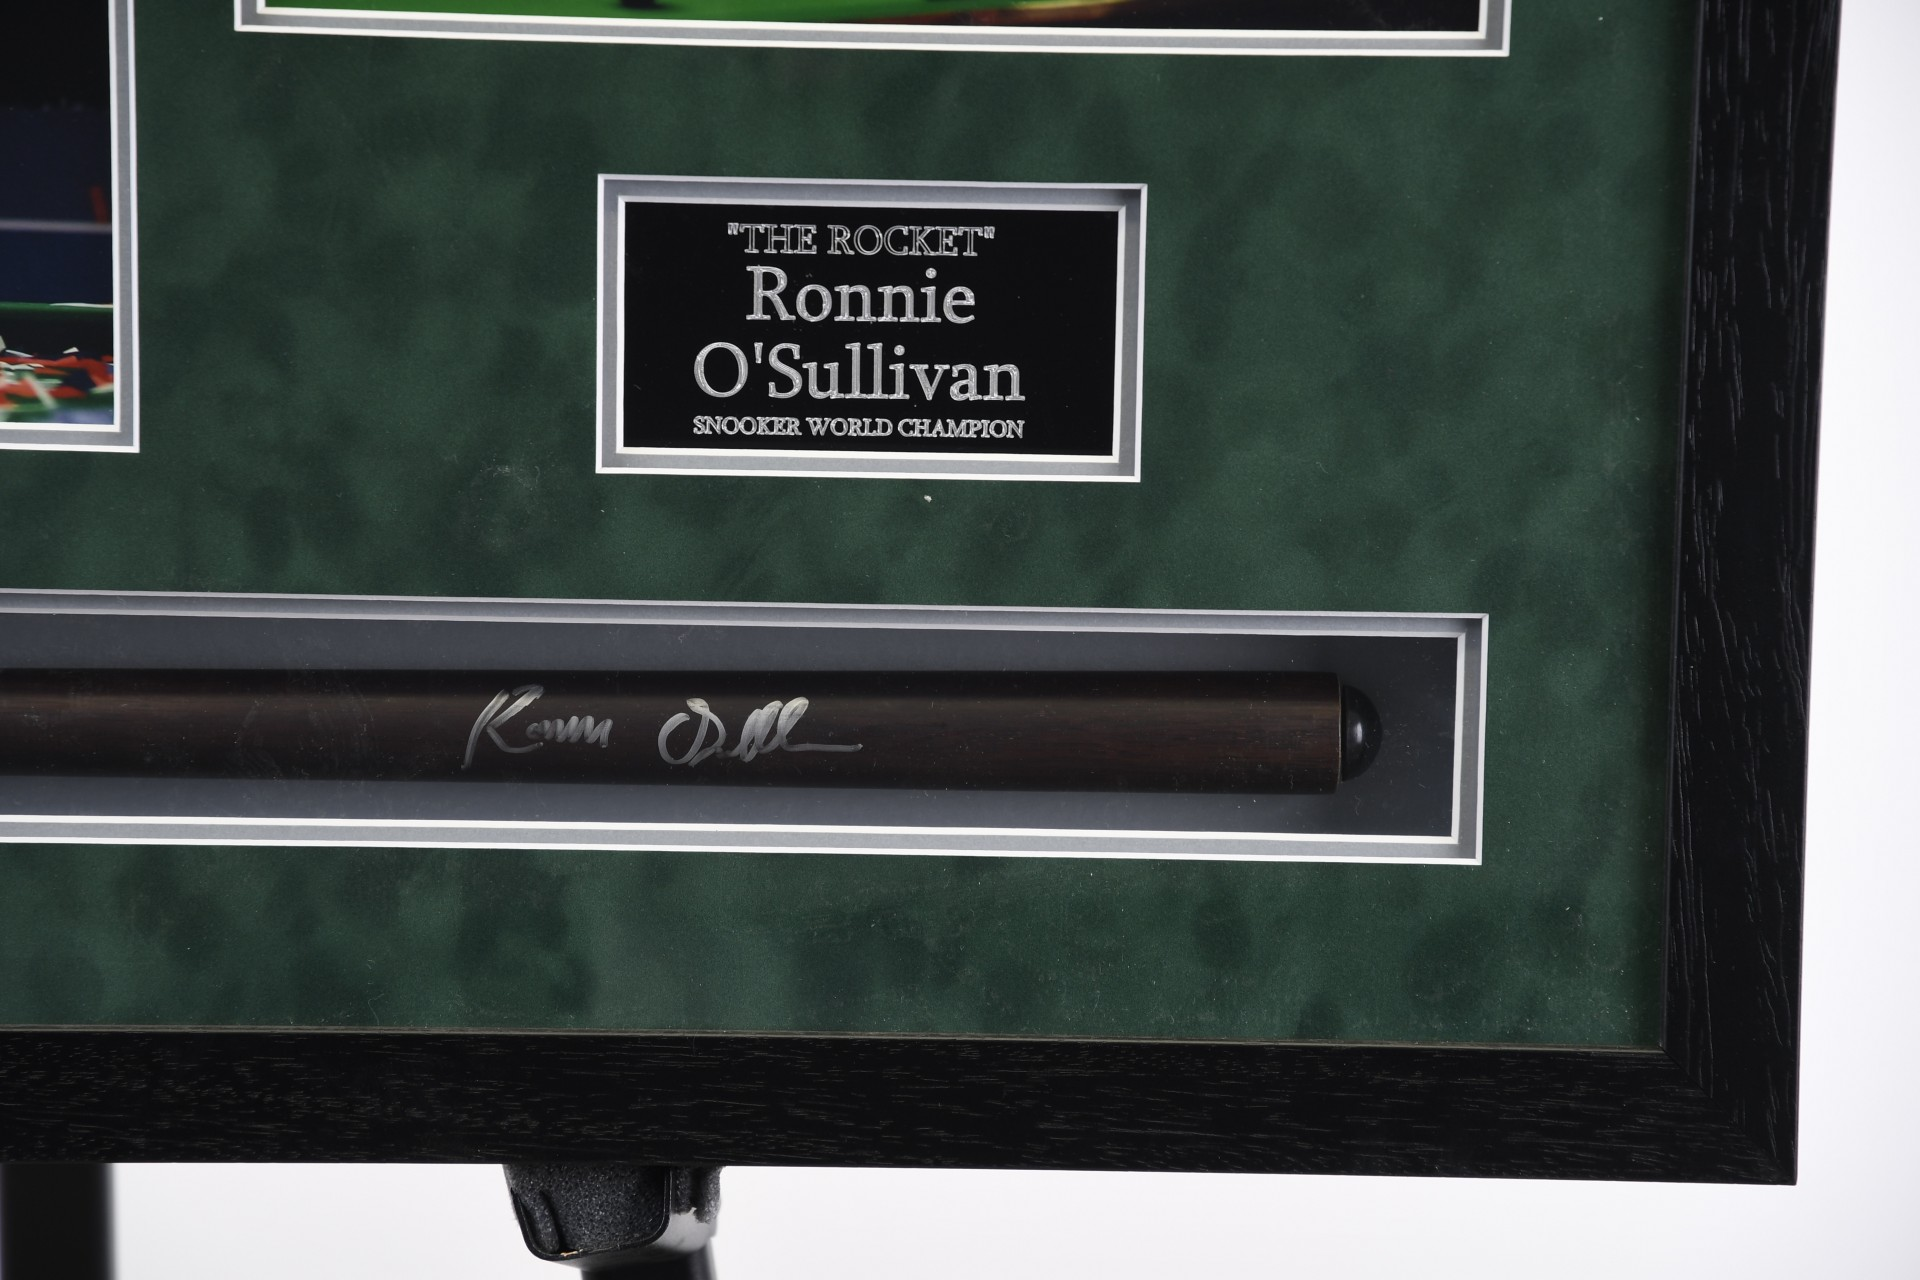 SIGNED CUE BY RONNIE O'SULLIVAN